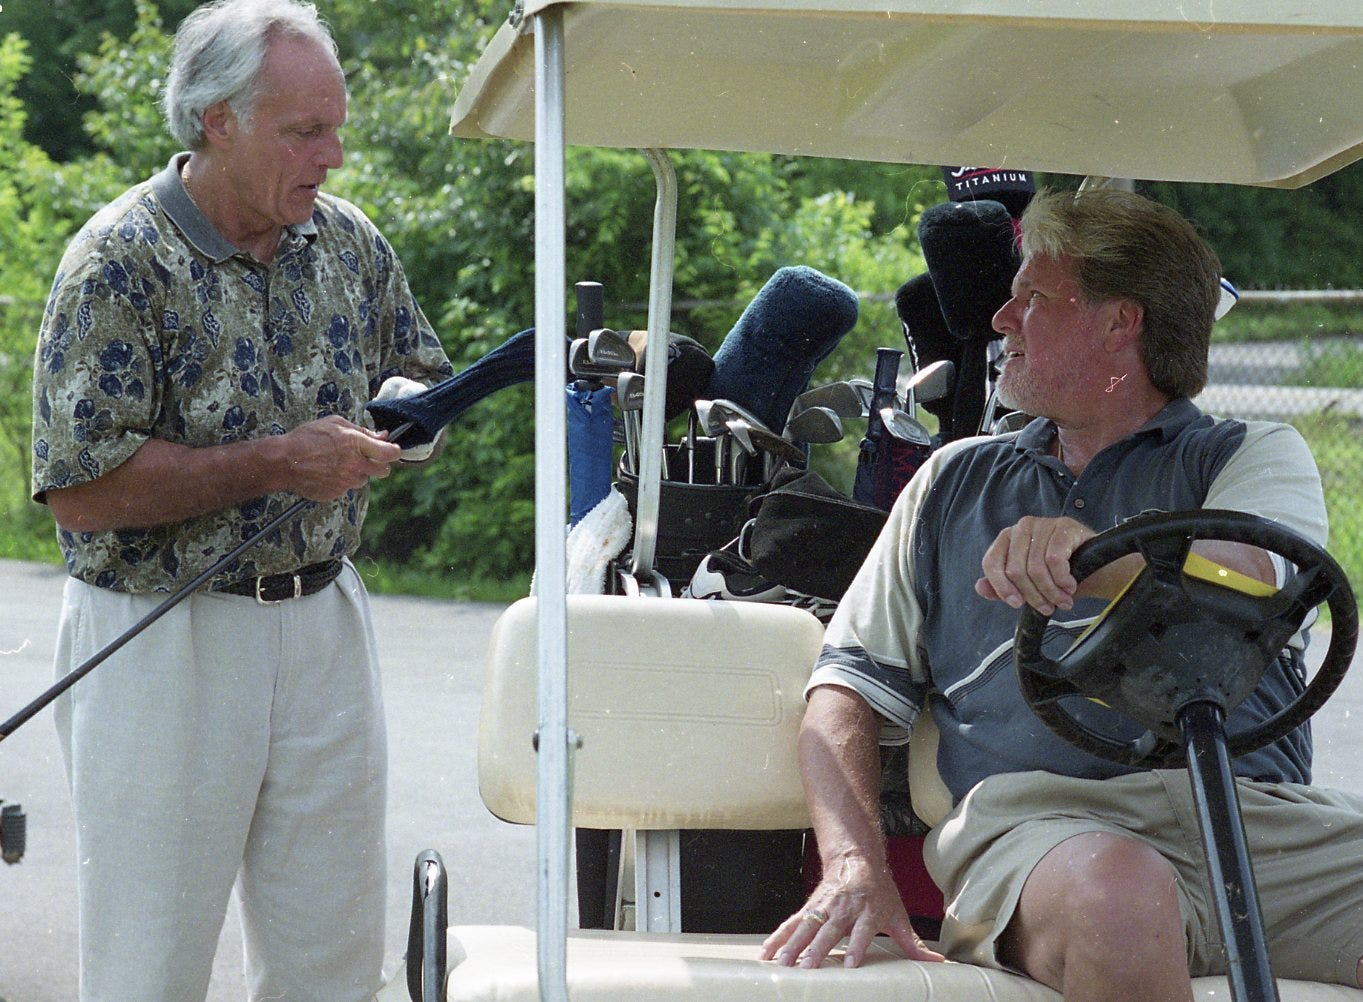 Dallas Cowboys assistant coach Joe Azezanno talks with Con Hunley between holes at the Con Hunley Golden Gloves golf tournament at Whittle Springs Golf Course. June, 2000.